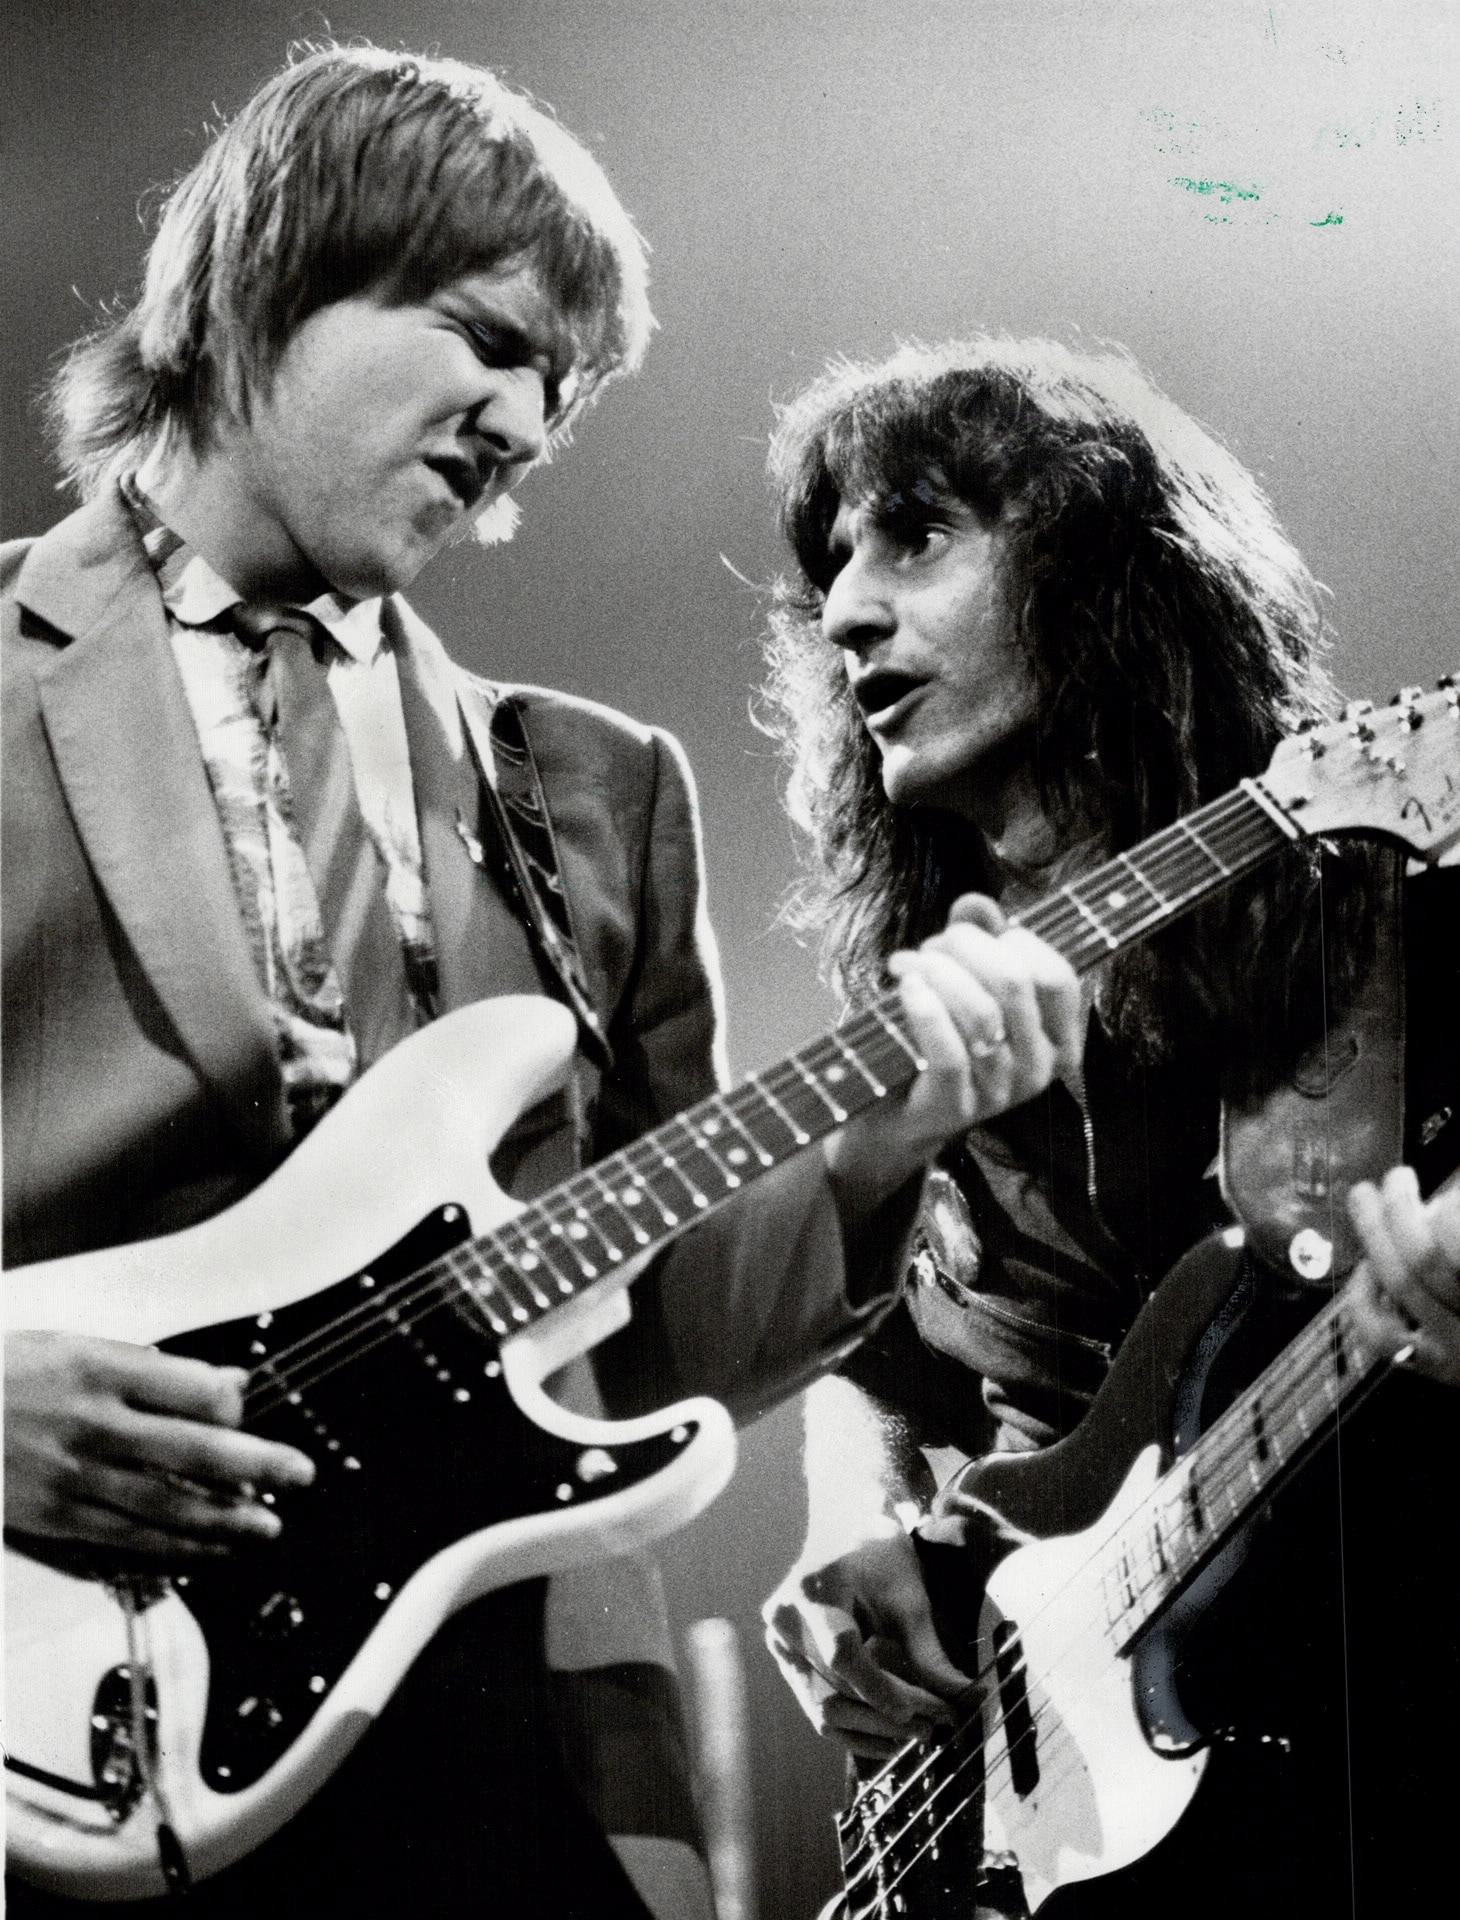 A black and white photo of Alex Lifeson and Geddy Lee playing on stage.